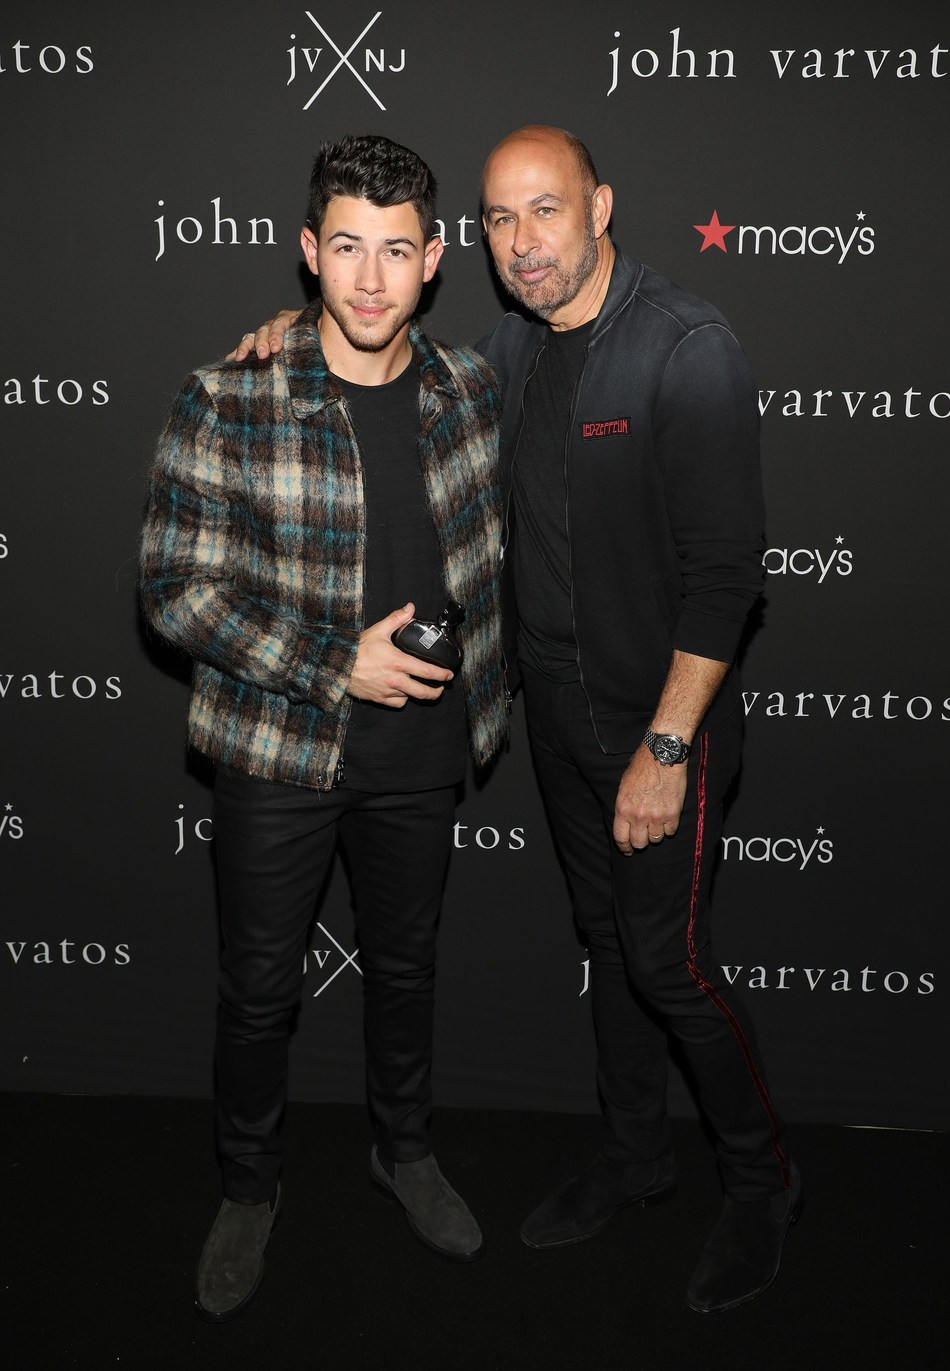 International Menswear Designer John Varvatos And Musician And Actor Nick Jonas Celebrate The Launch Of Their New Fragrance, JVxNJ Silver Edition. (Alex Tamargo/Getty Images)